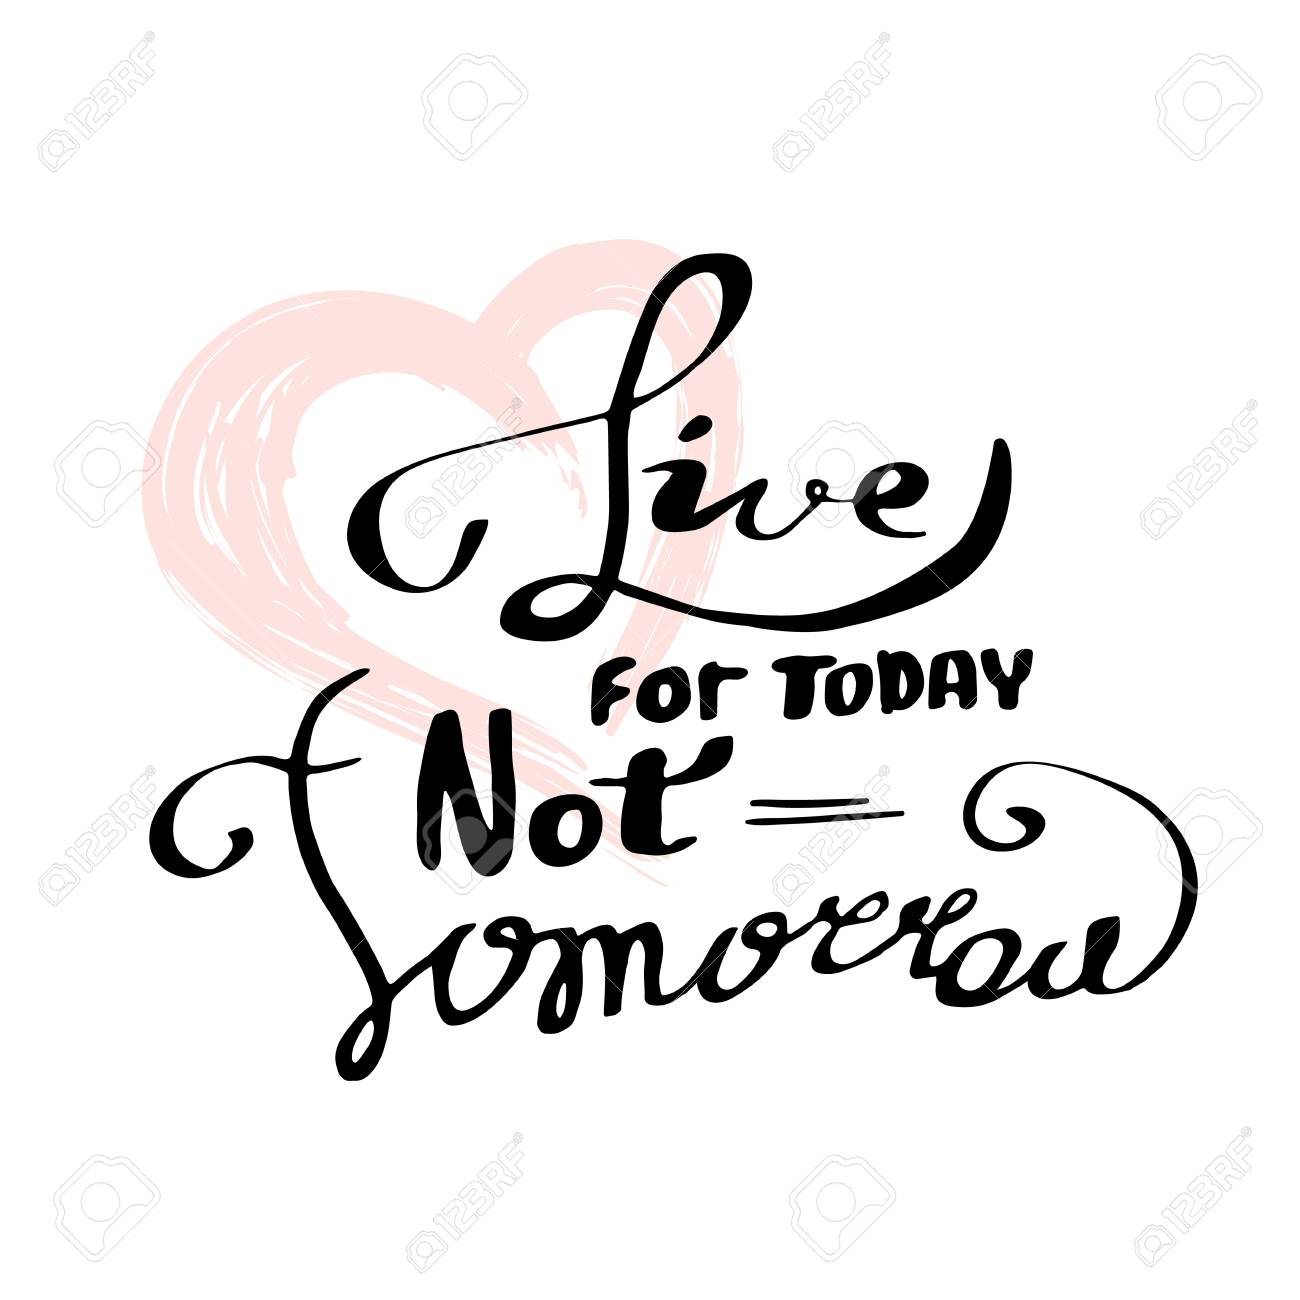 Live For Today Quotes Prepossessing Live For Today Not Tomorrow Inspirational Quote Motivation